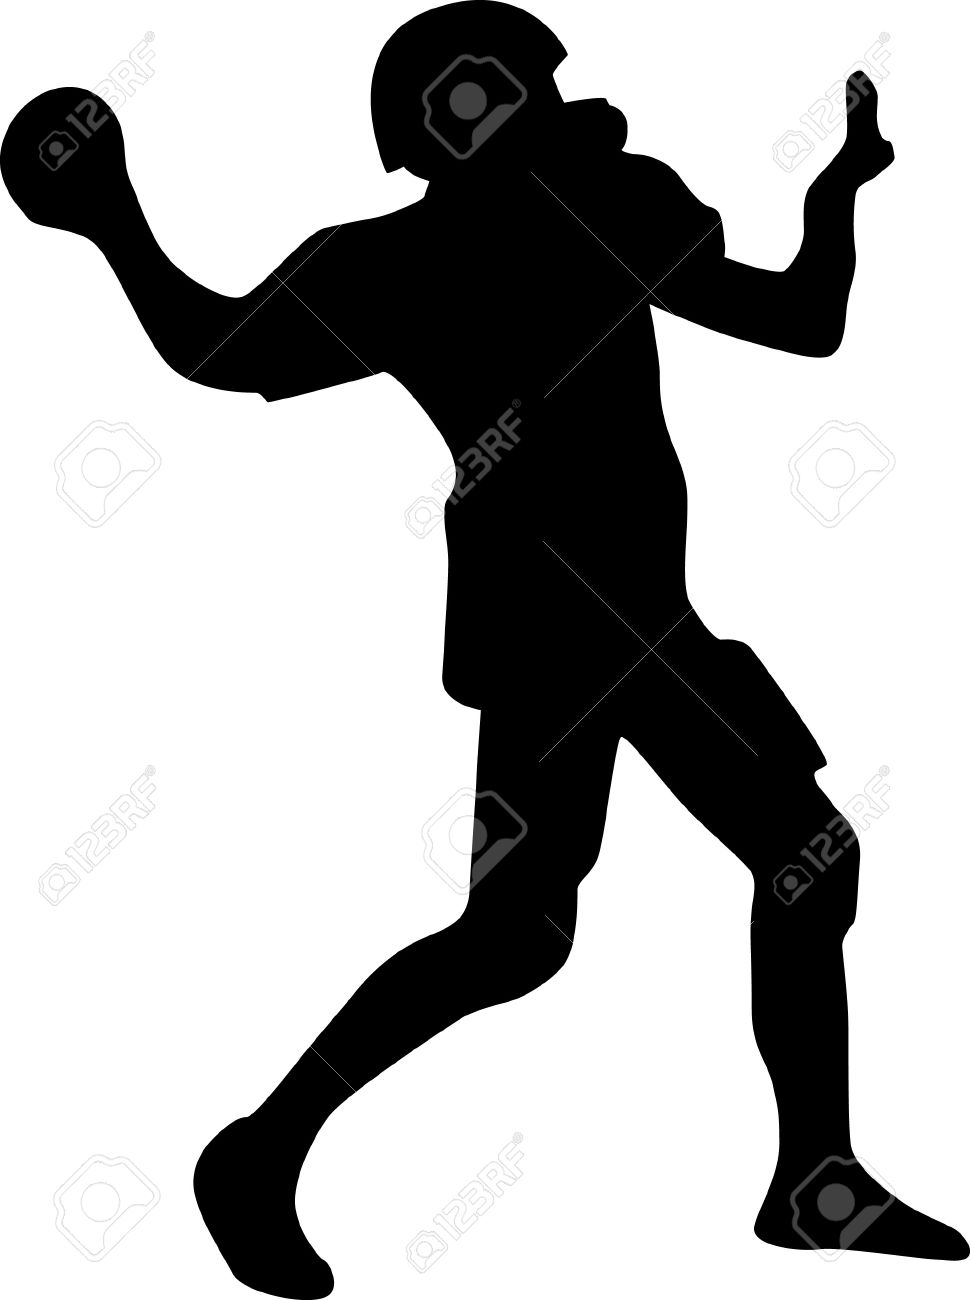 Football clipart shadow. Silhouette free download best